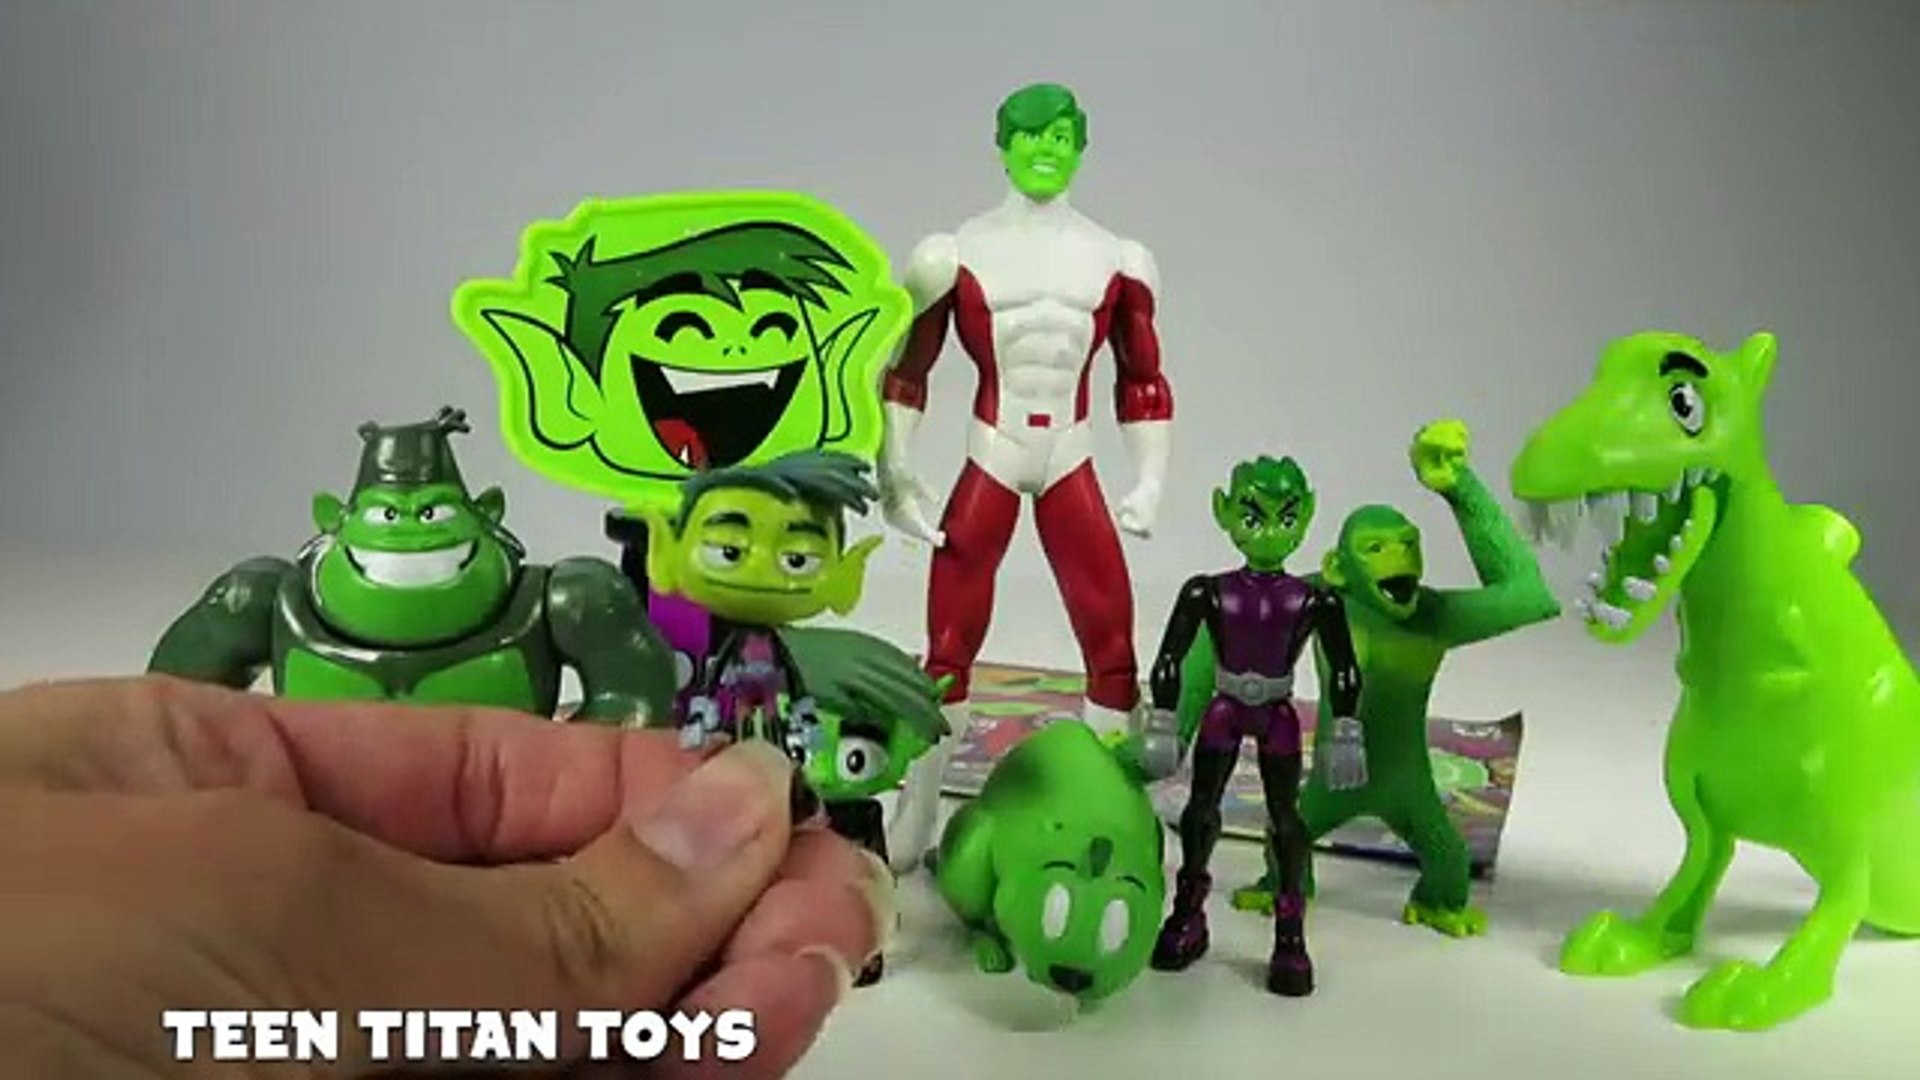 TEEN TITANS TOYS Beast Boy Collection with Teen Titans Go, Original Teen Titans Toys & Pop Chare